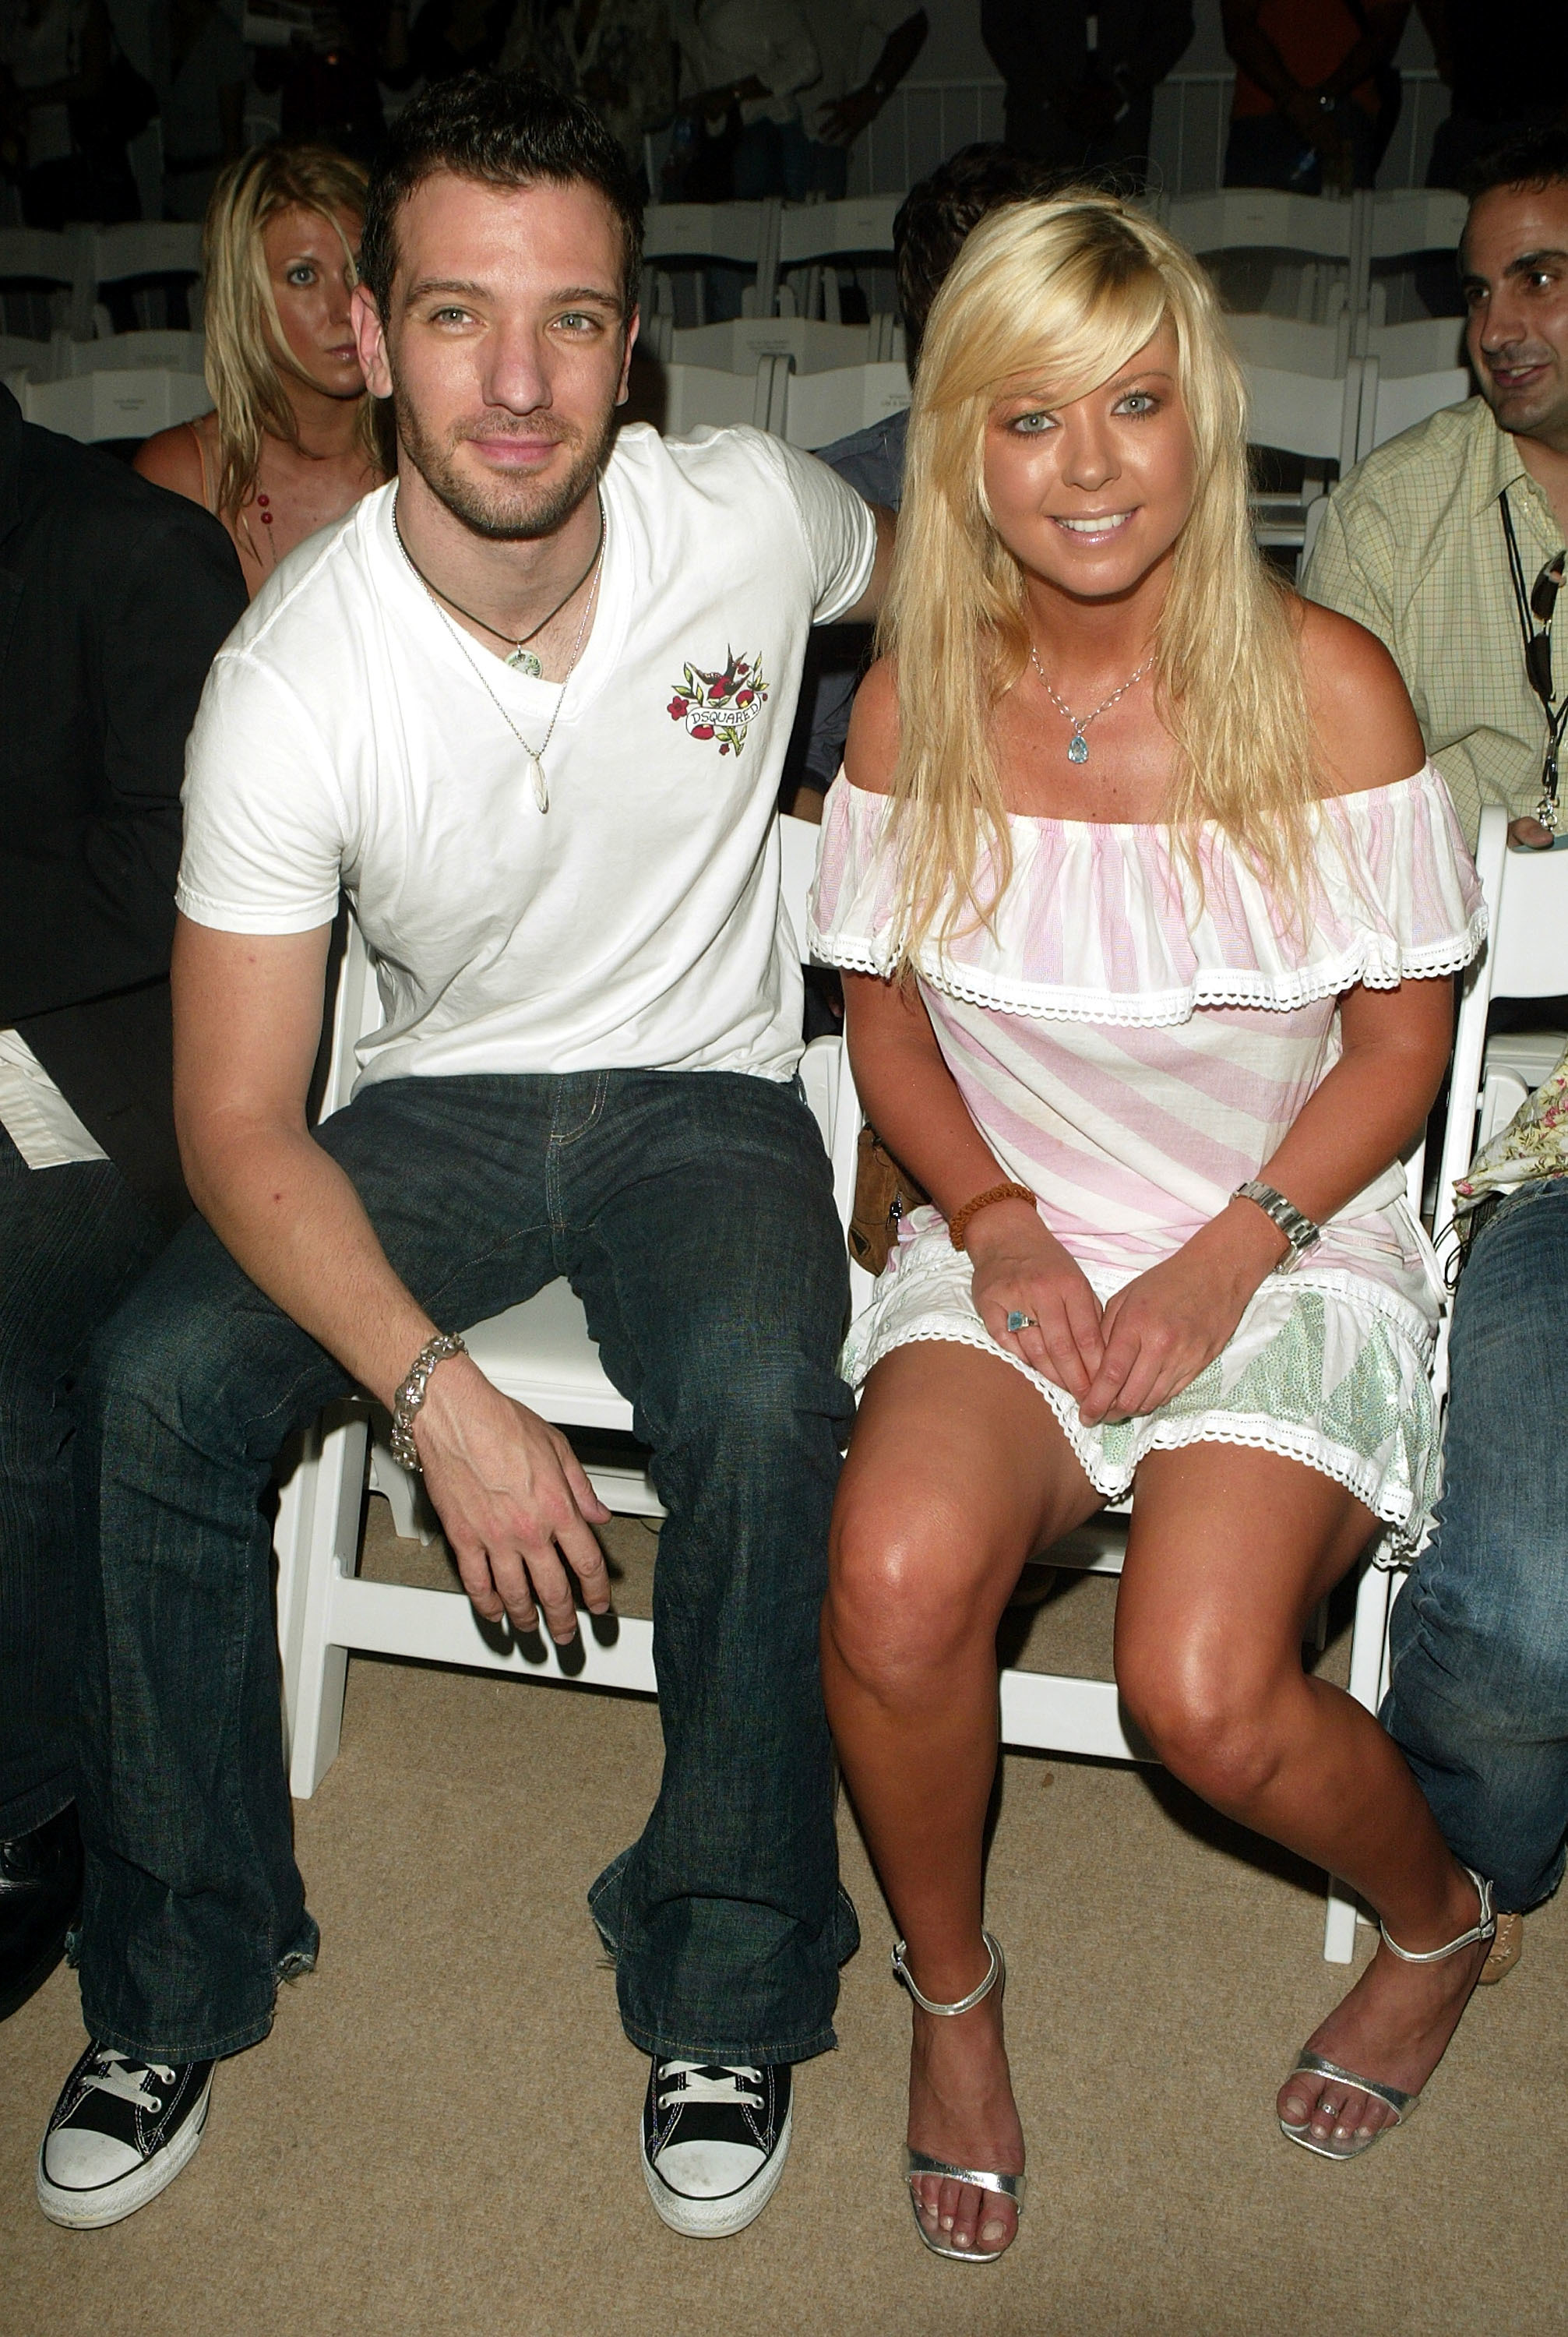 JC Chasez and Tara Reid attend the Custo Barcelona Spring 2006 fashion show during Olympus Fashion Week in New York City on Sept. 15, 2005.